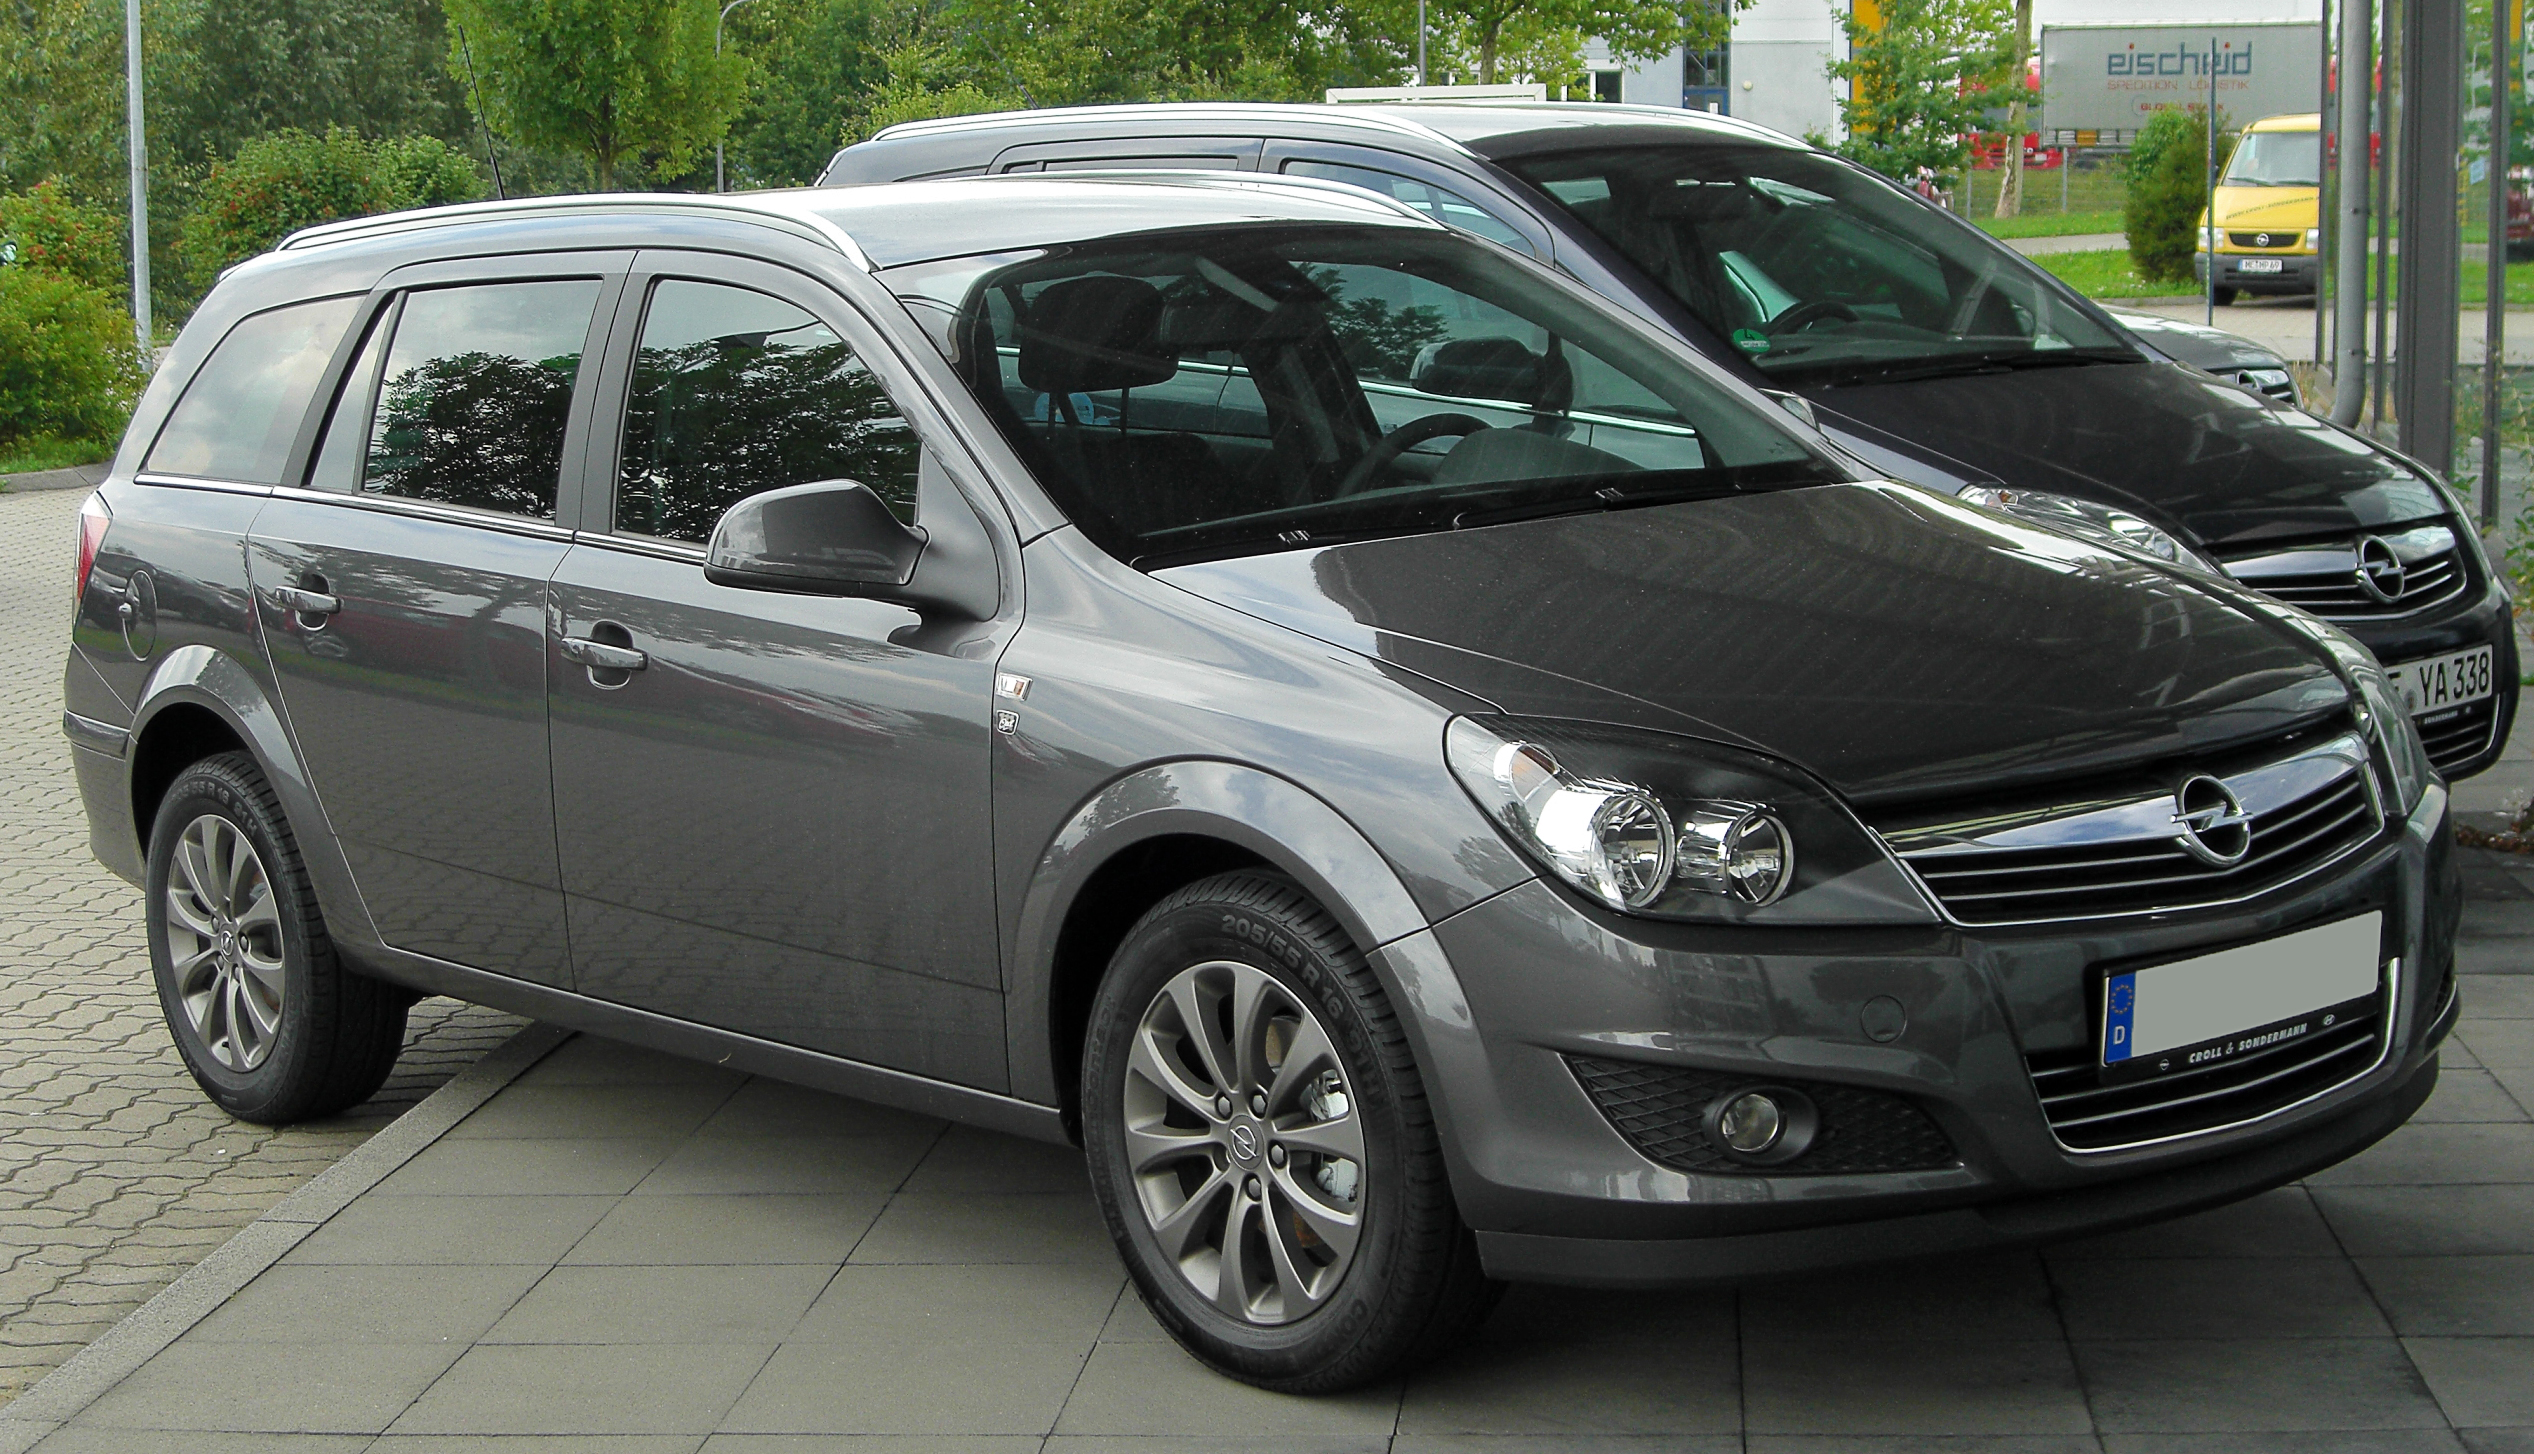 2010 opel astra h caravan pictures information and specs auto. Black Bedroom Furniture Sets. Home Design Ideas